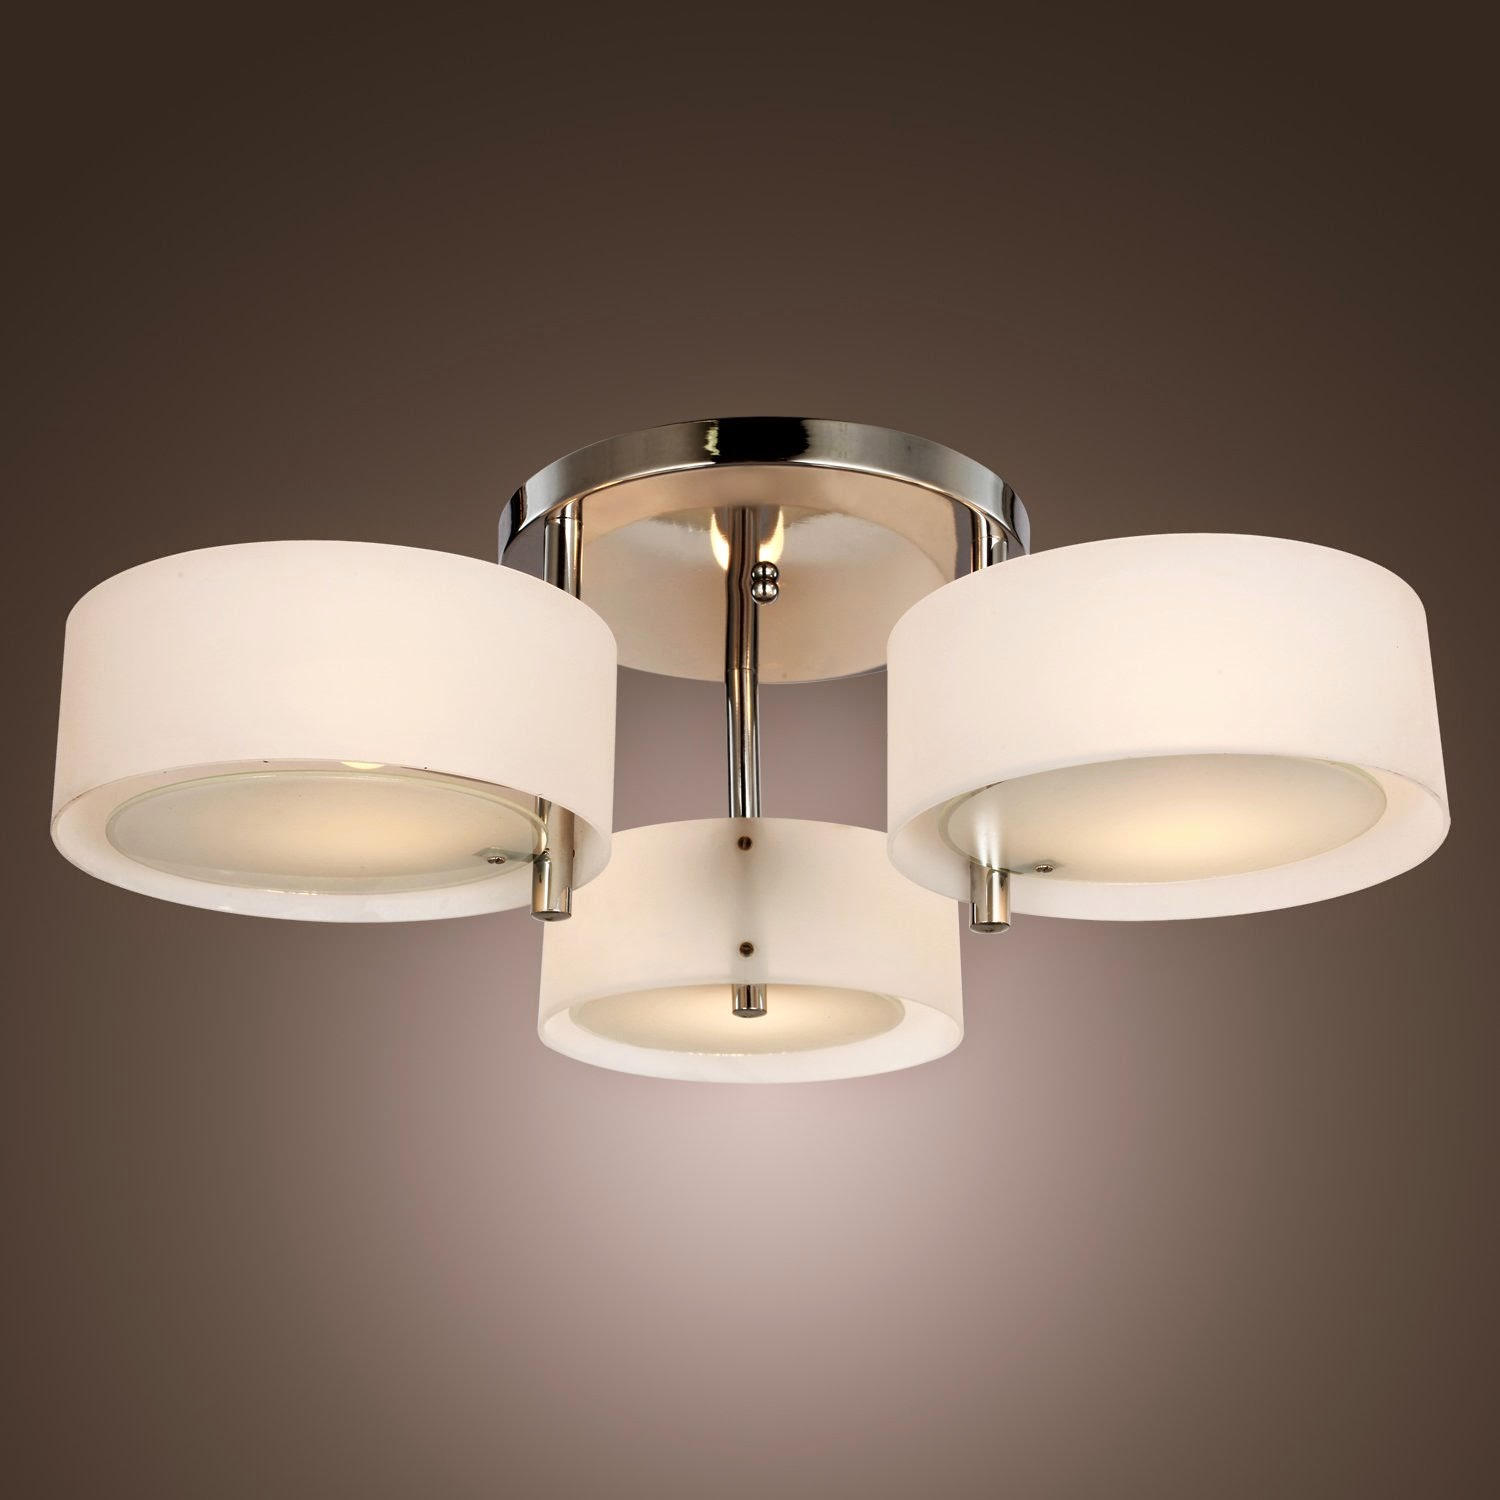 Ceiling light fixture with outlet - Light fixtures chandeliers ...